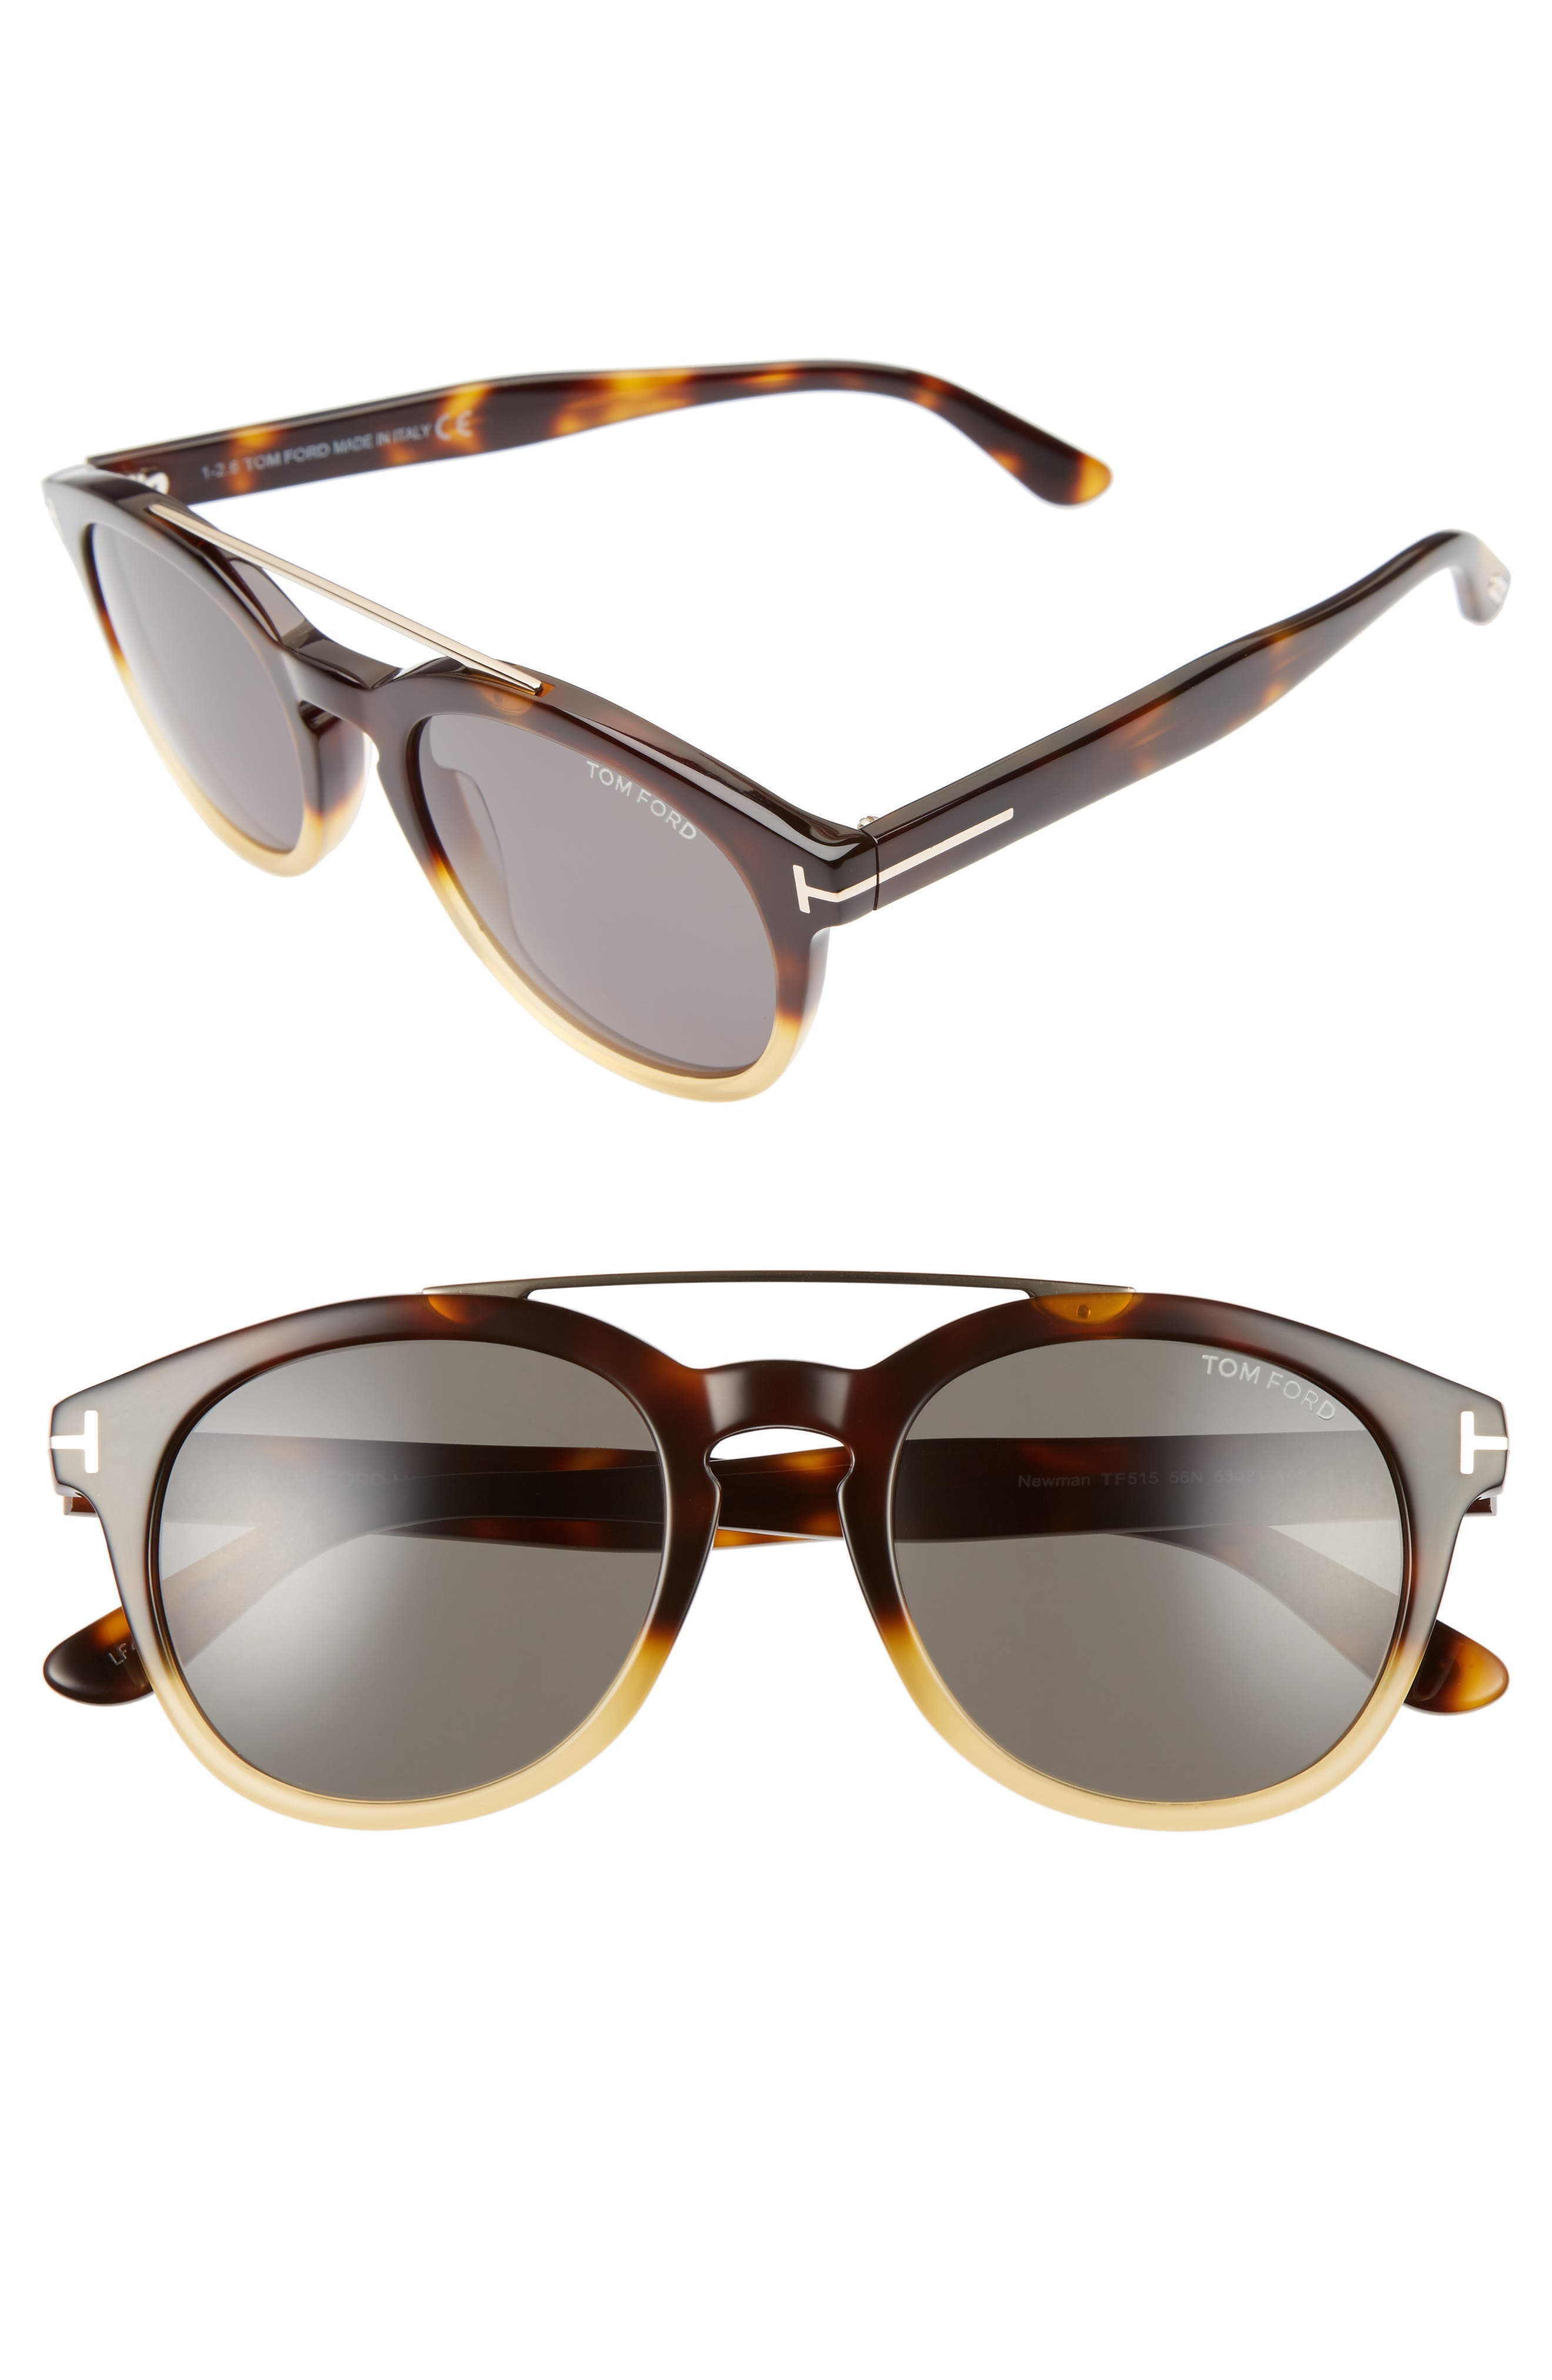 Newman 53mm Round Sunglasses,                         Main,                         color, Honey/ Rose Gold/ Green